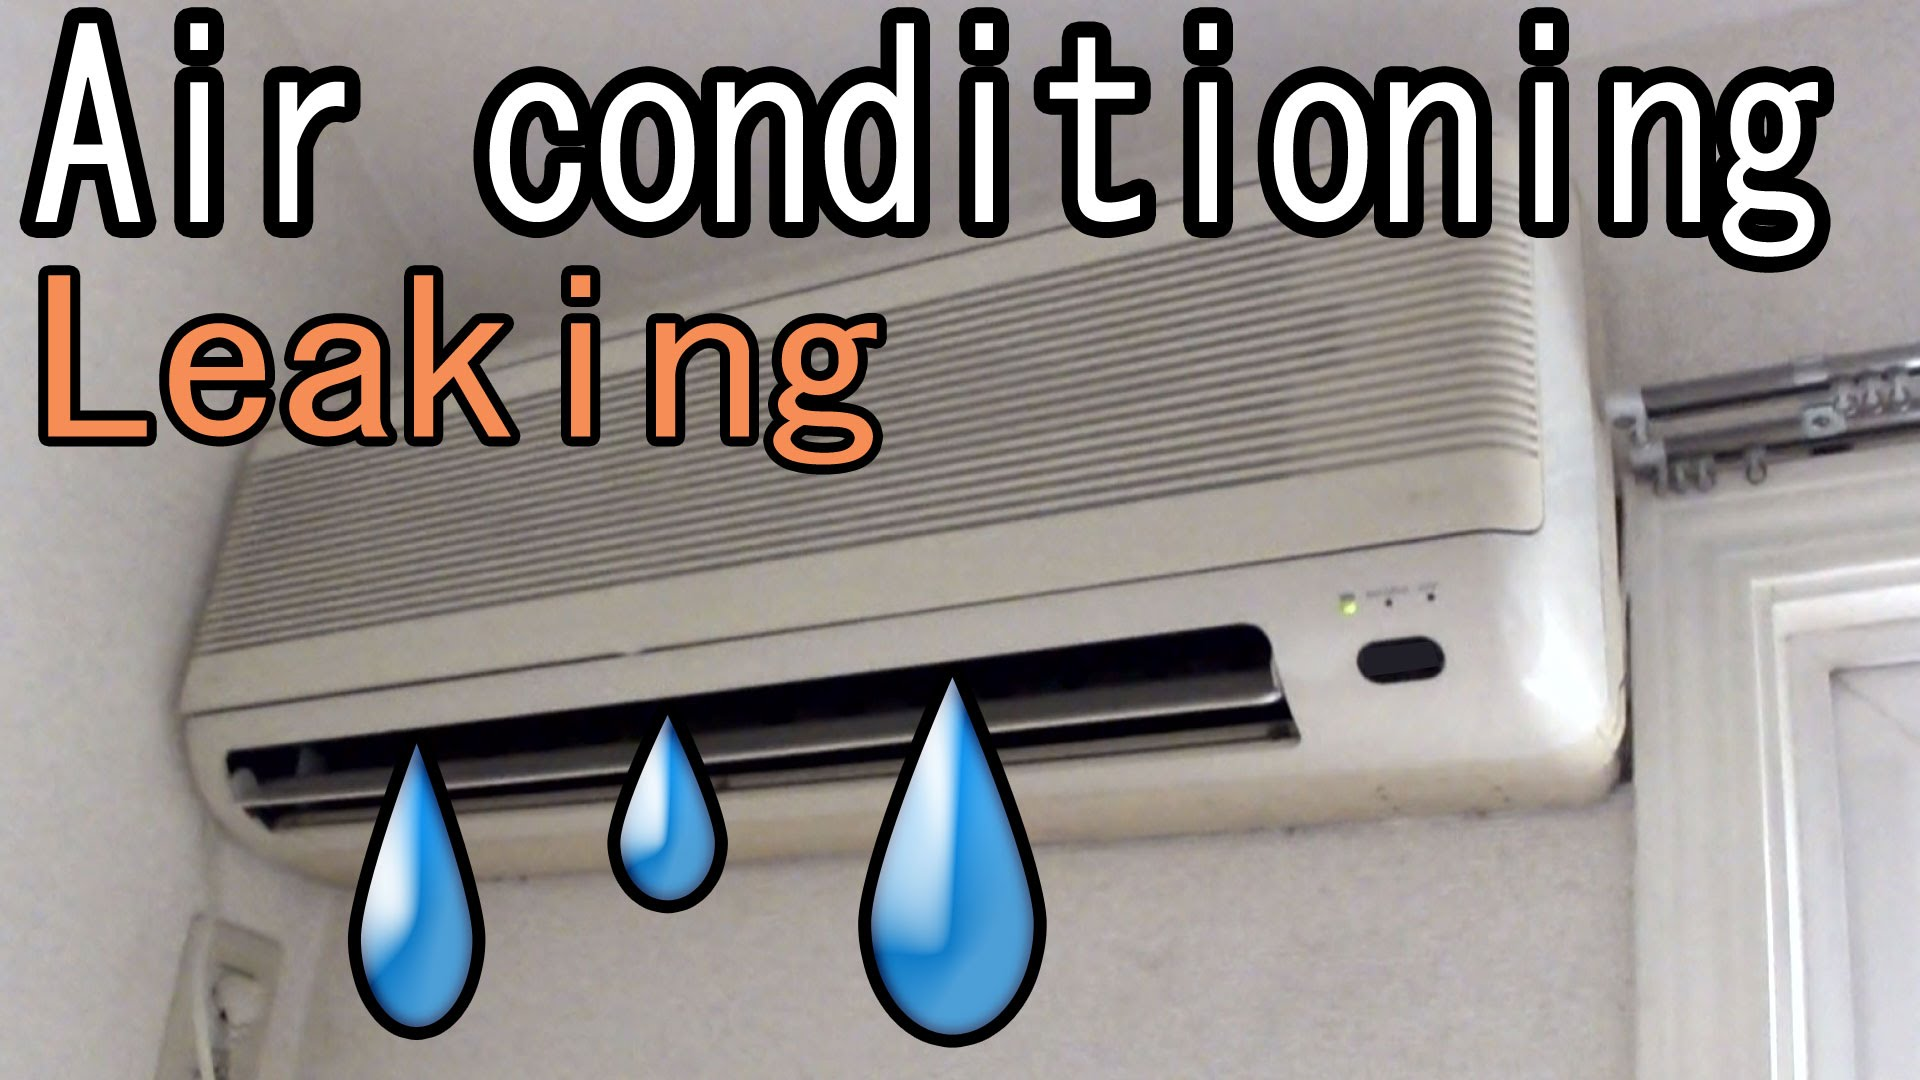 Why is there water coming from my Air Conditioner